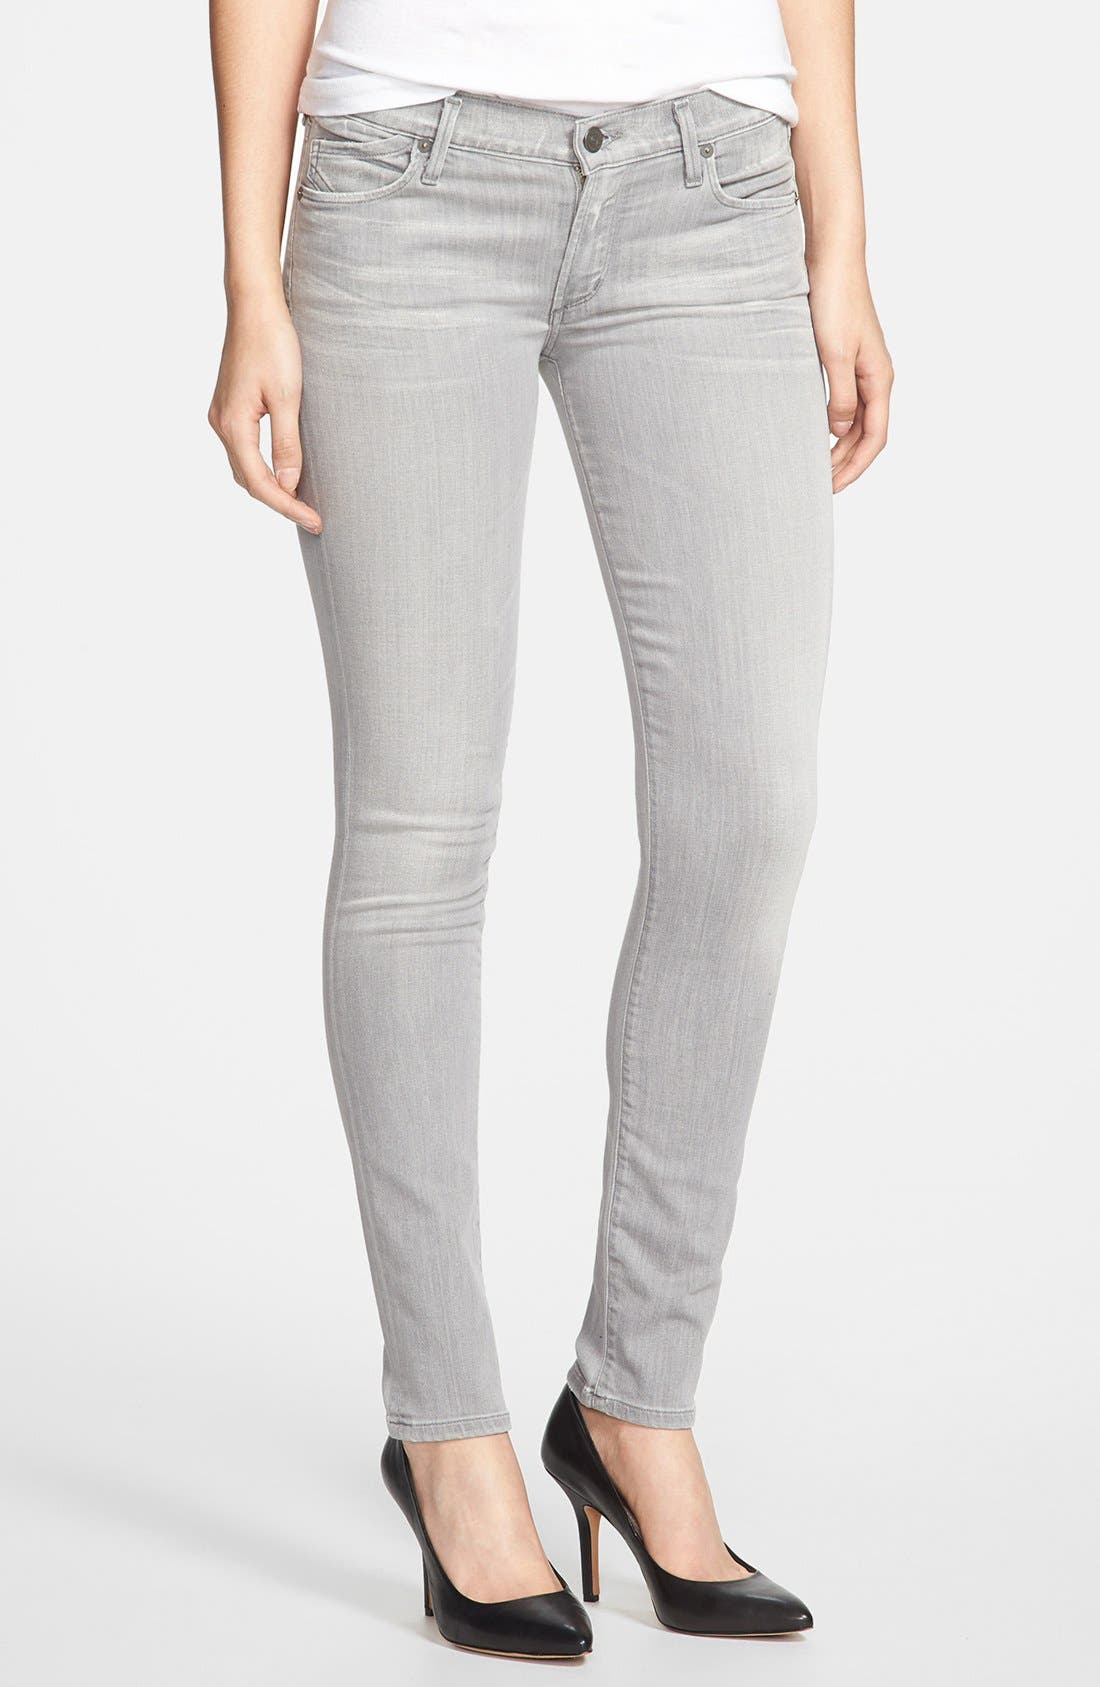 Alternate Image 1 Selected - Citizens of Humanity Ultra Skinny Jeans (Pretender)